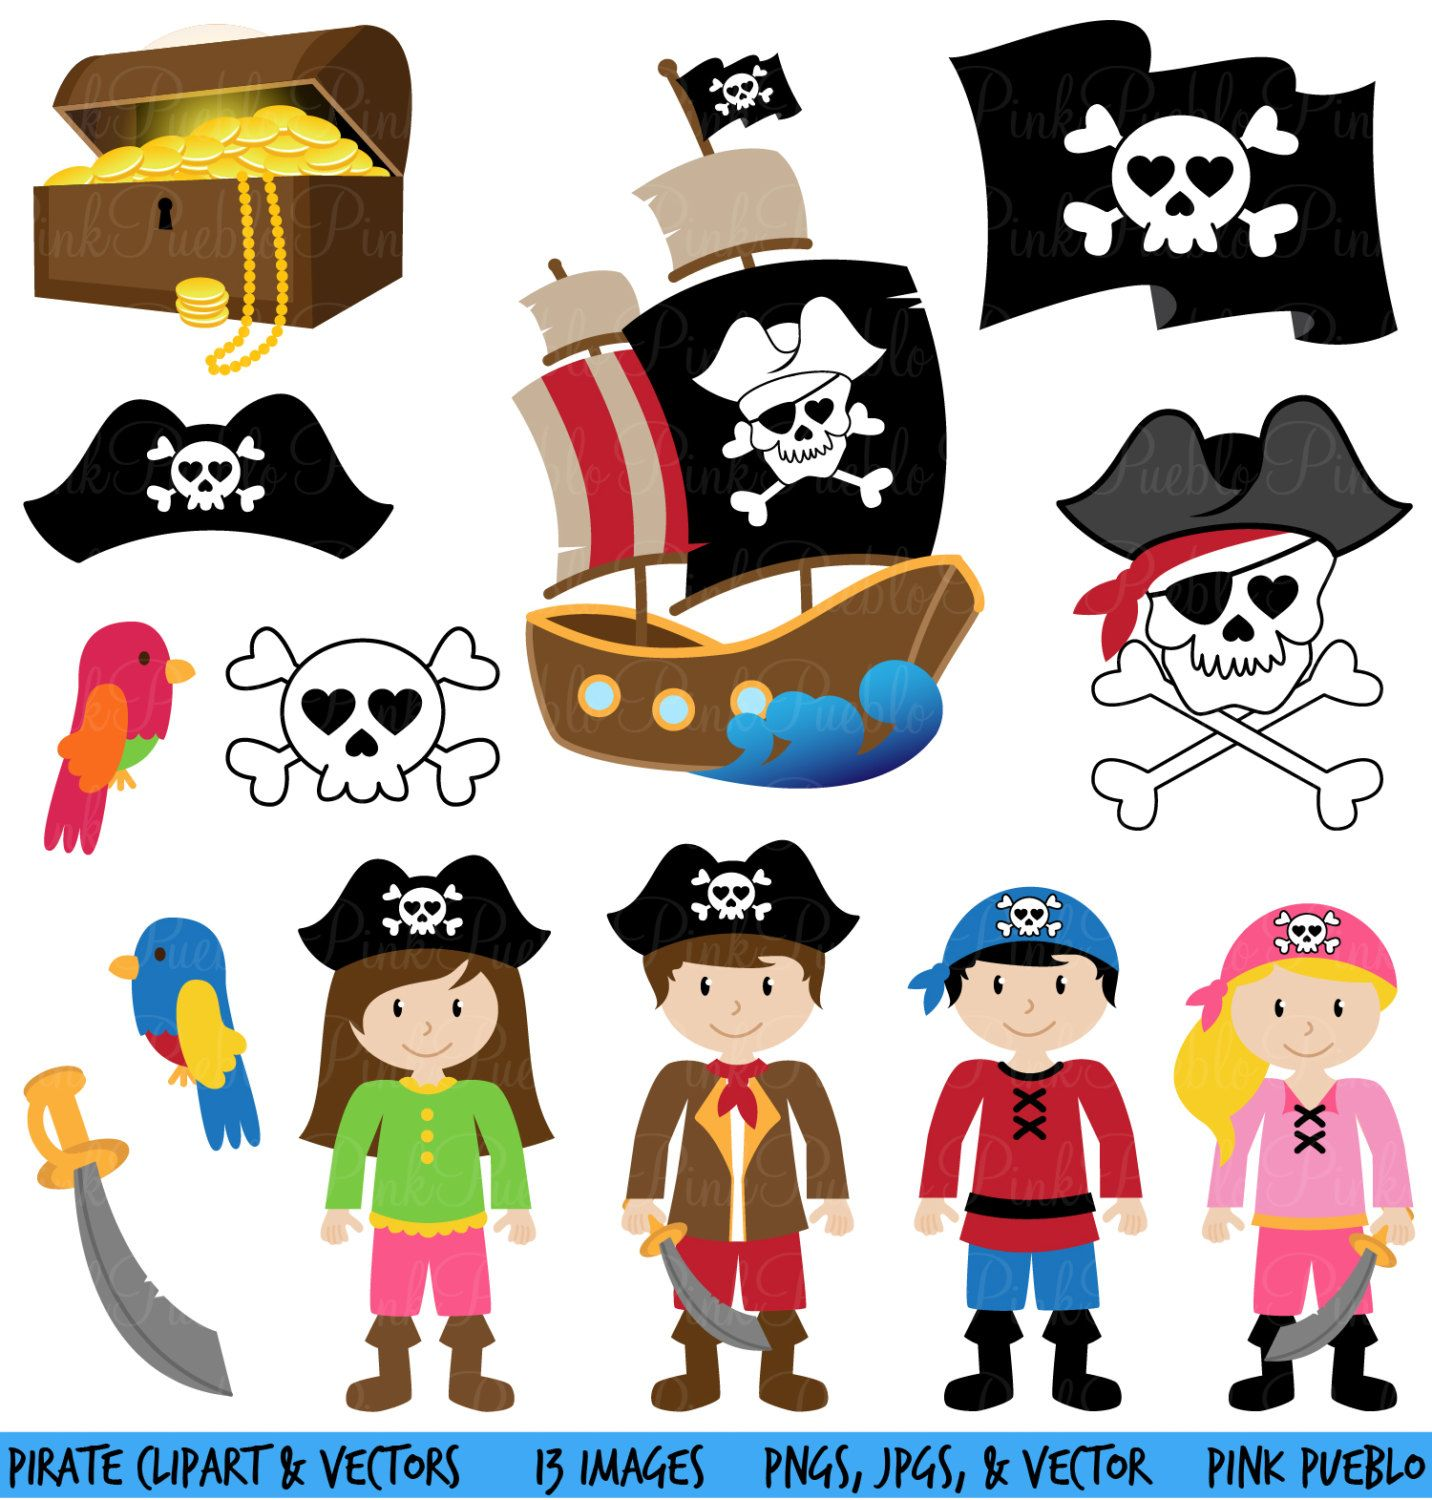 Pirate Clipart Clip Art and Vectors mercial and Personal Use